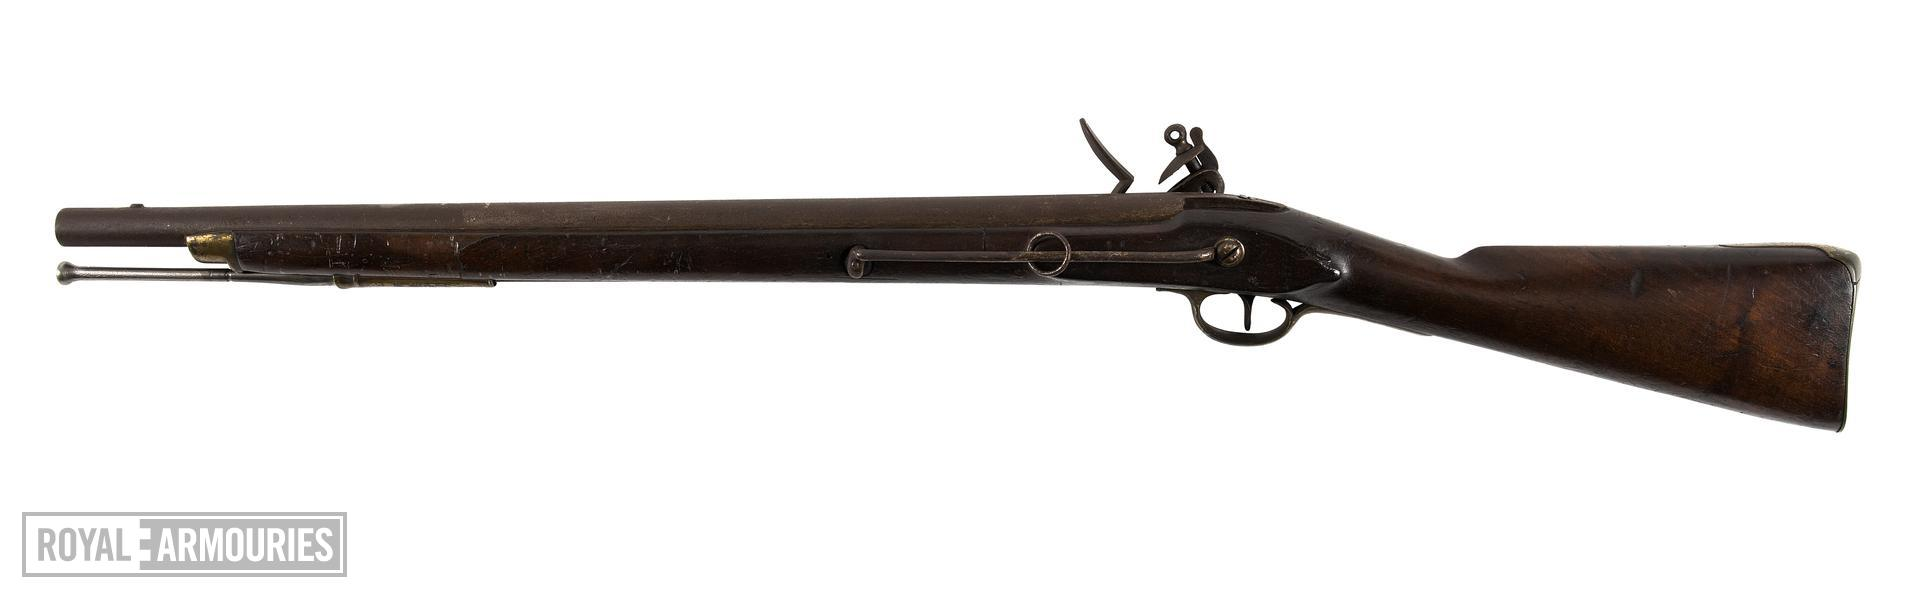 Flintlock military carbine - Pattern 1796 Heavy Dragoon Carbine